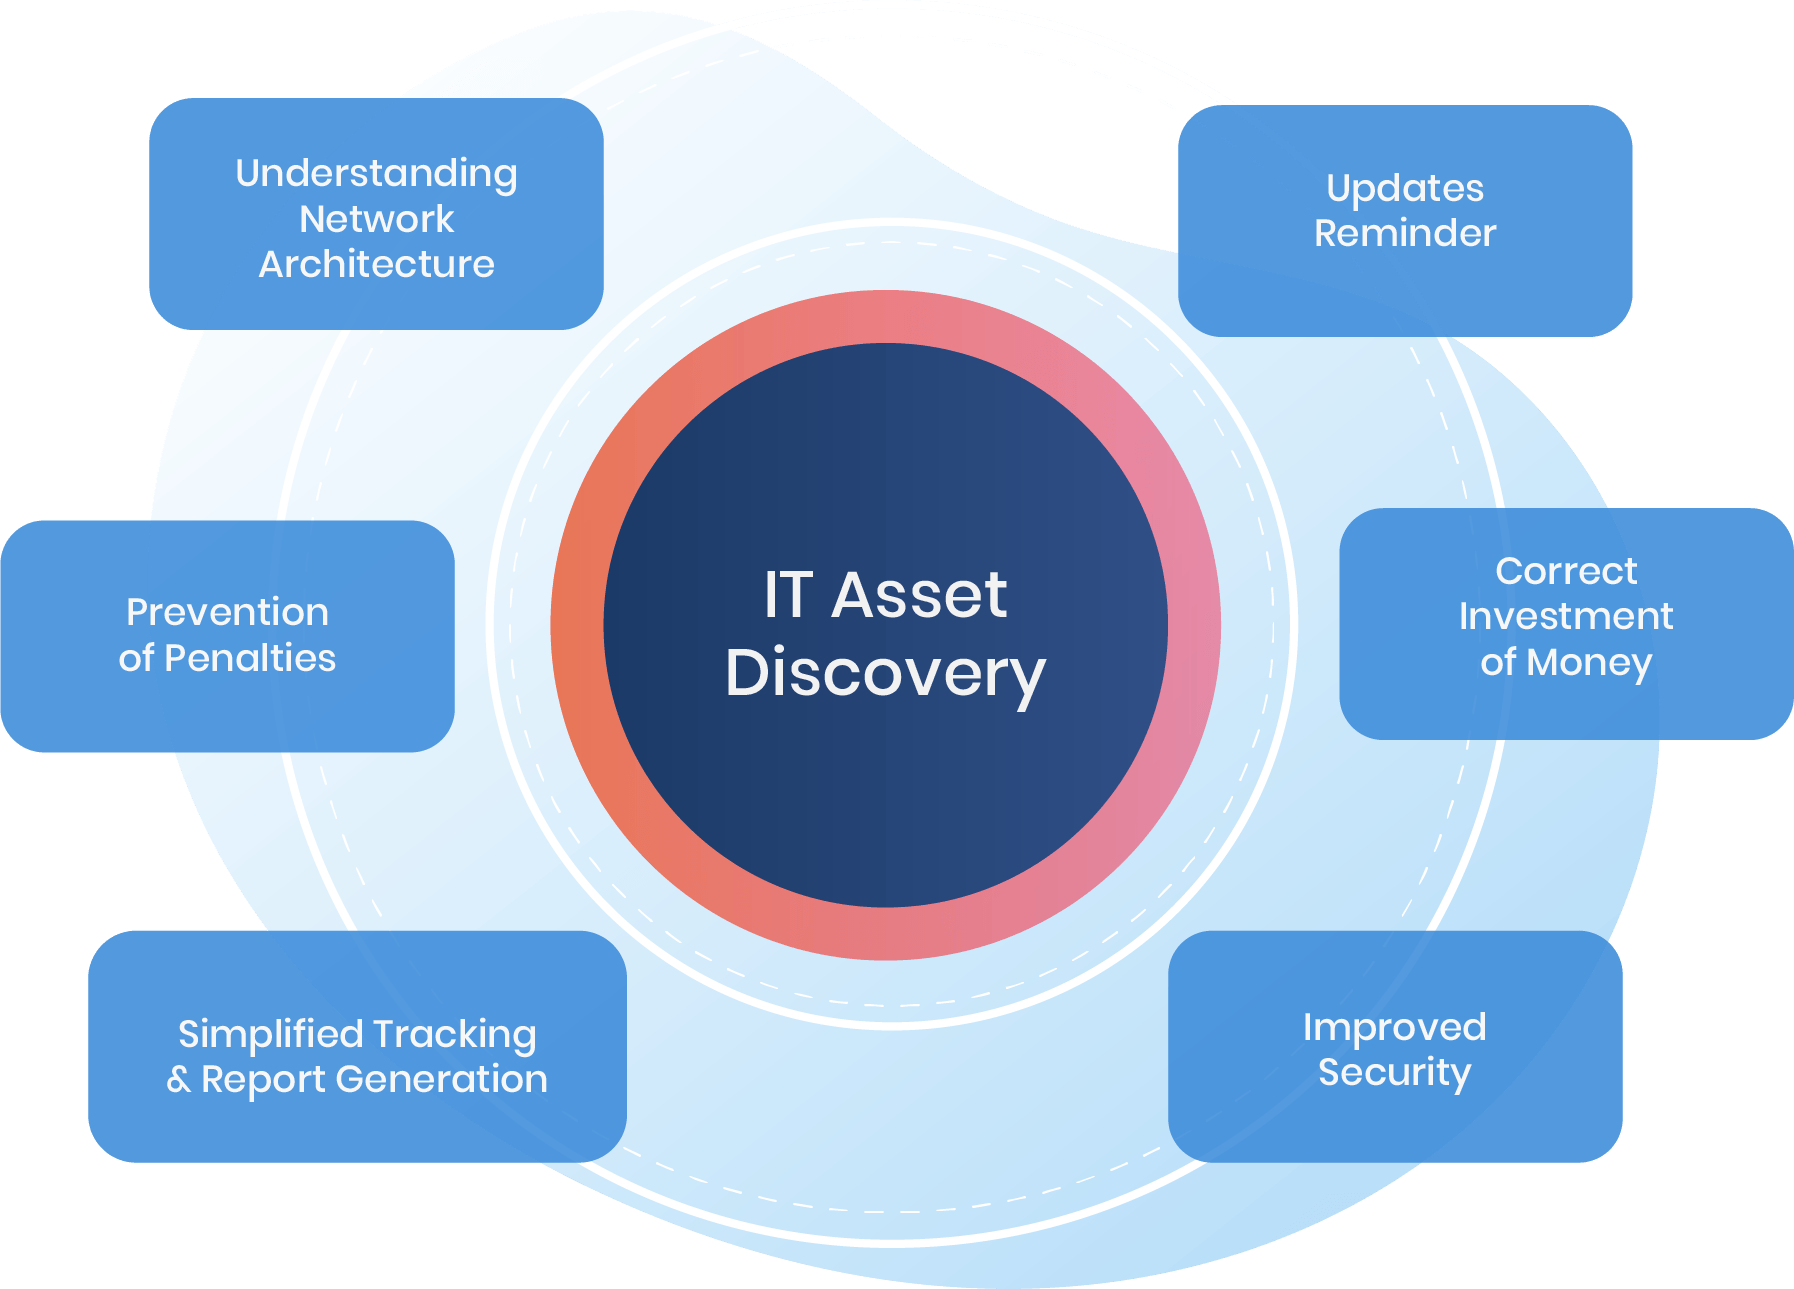 IT Asset Discovery